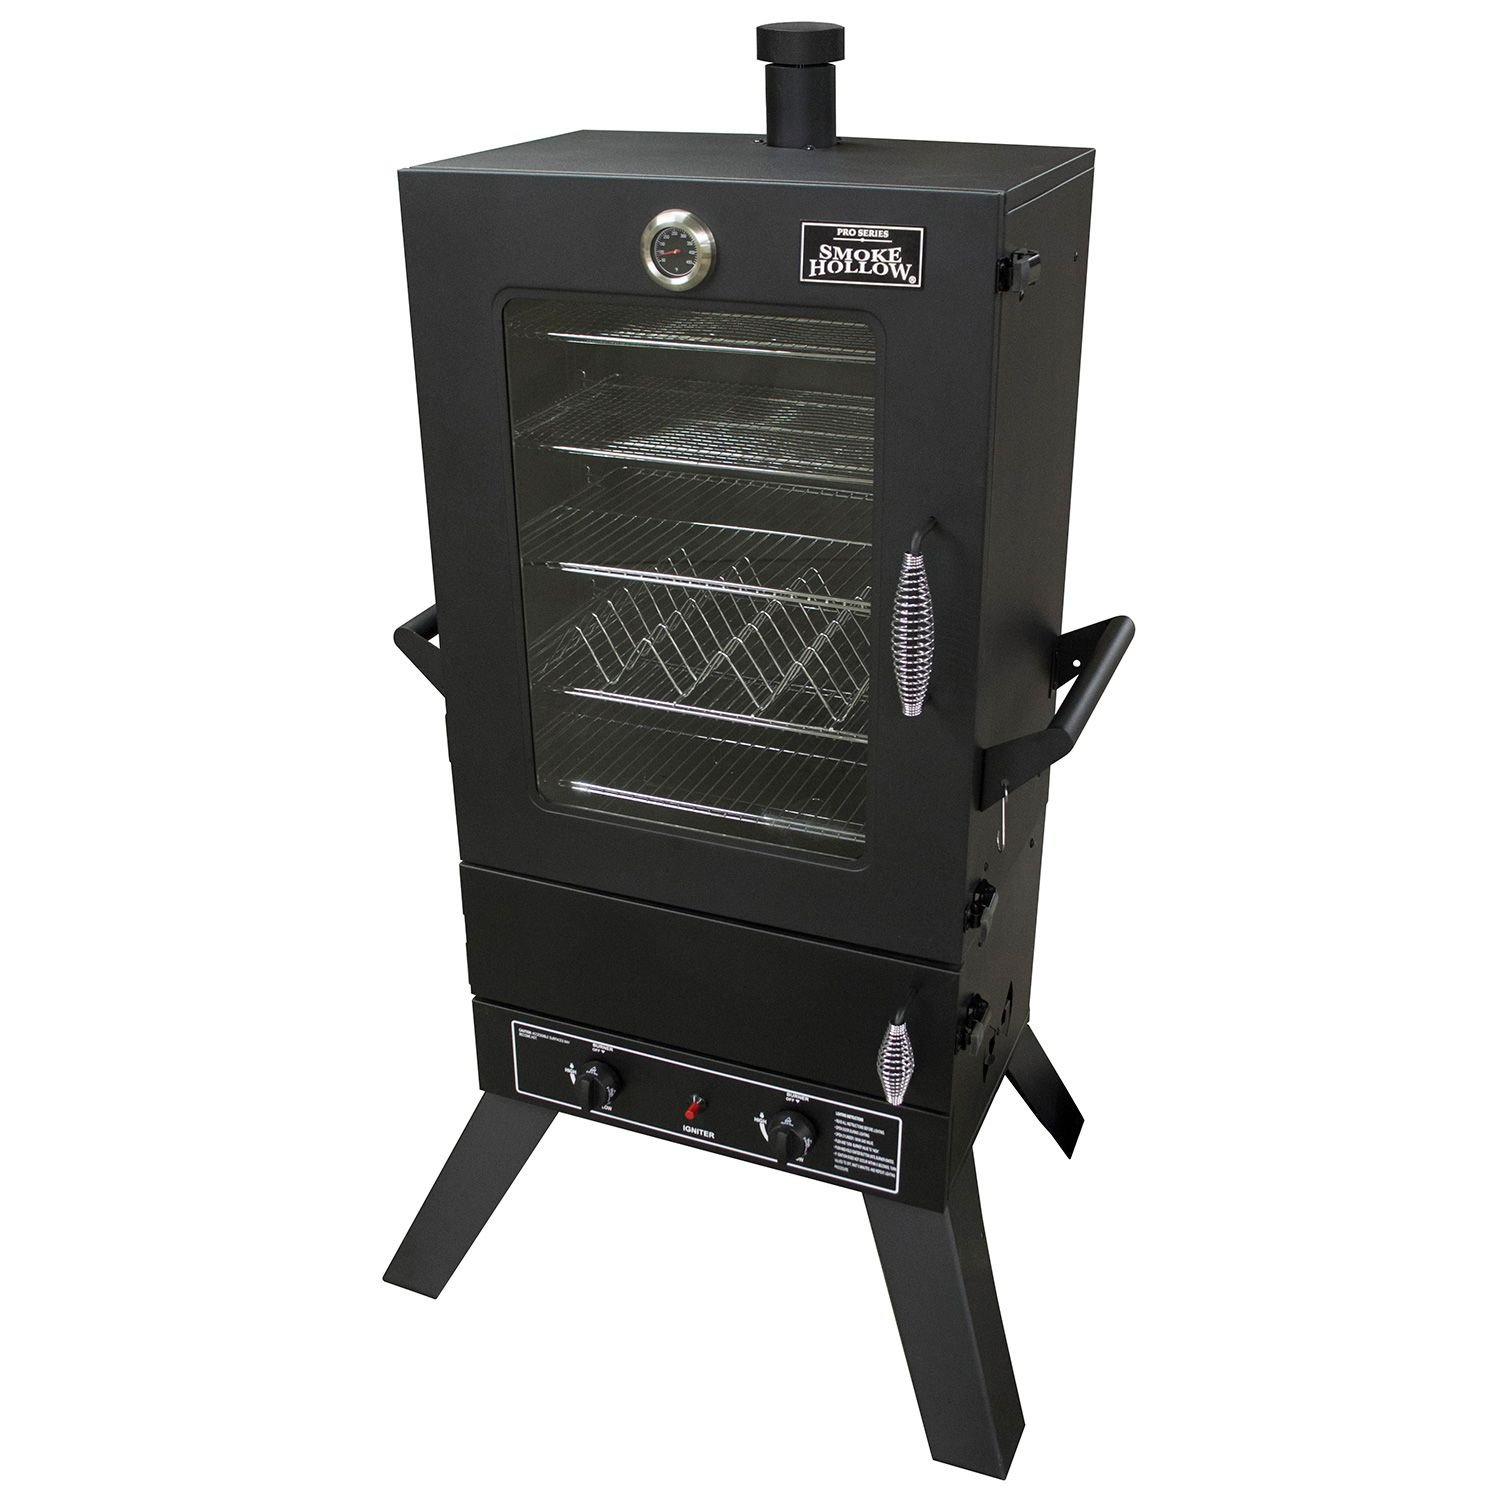 Smoke Hollow 44241GW 44-Inch 2-Door Propane Gas Smoker with Window by Smoke Hollow